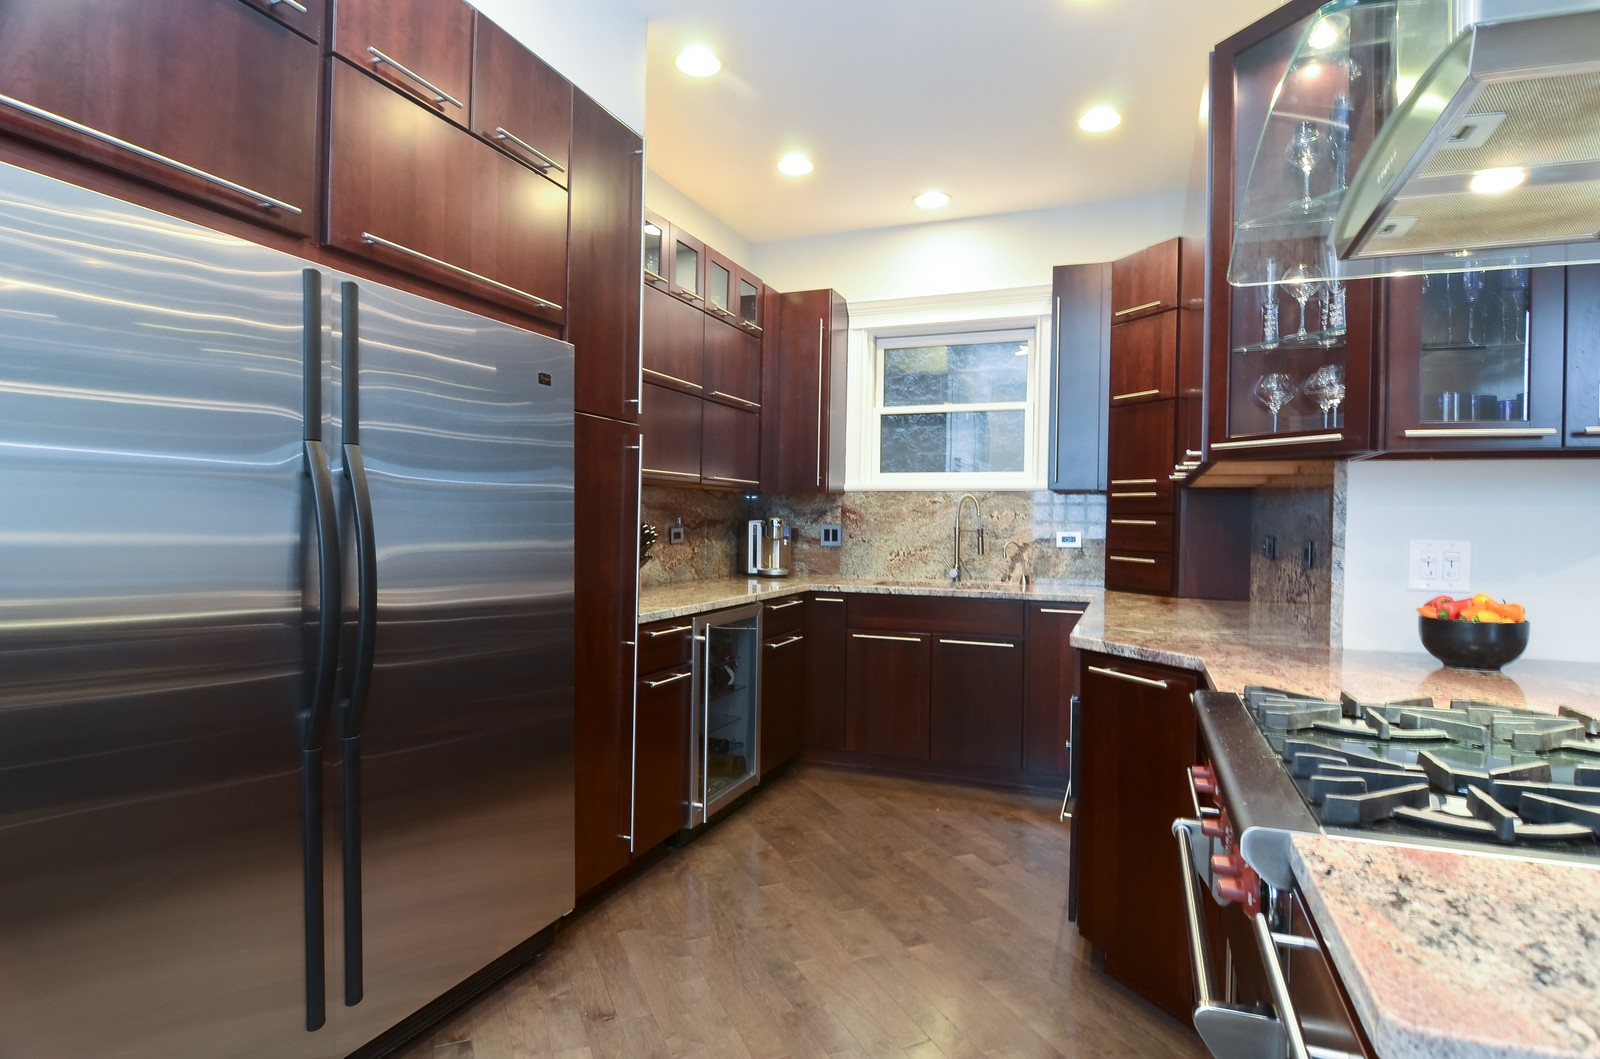 Real Estate Photography - 1856 W Armitage, Unit 1, Chicago, IL, 60622 - Kitchen